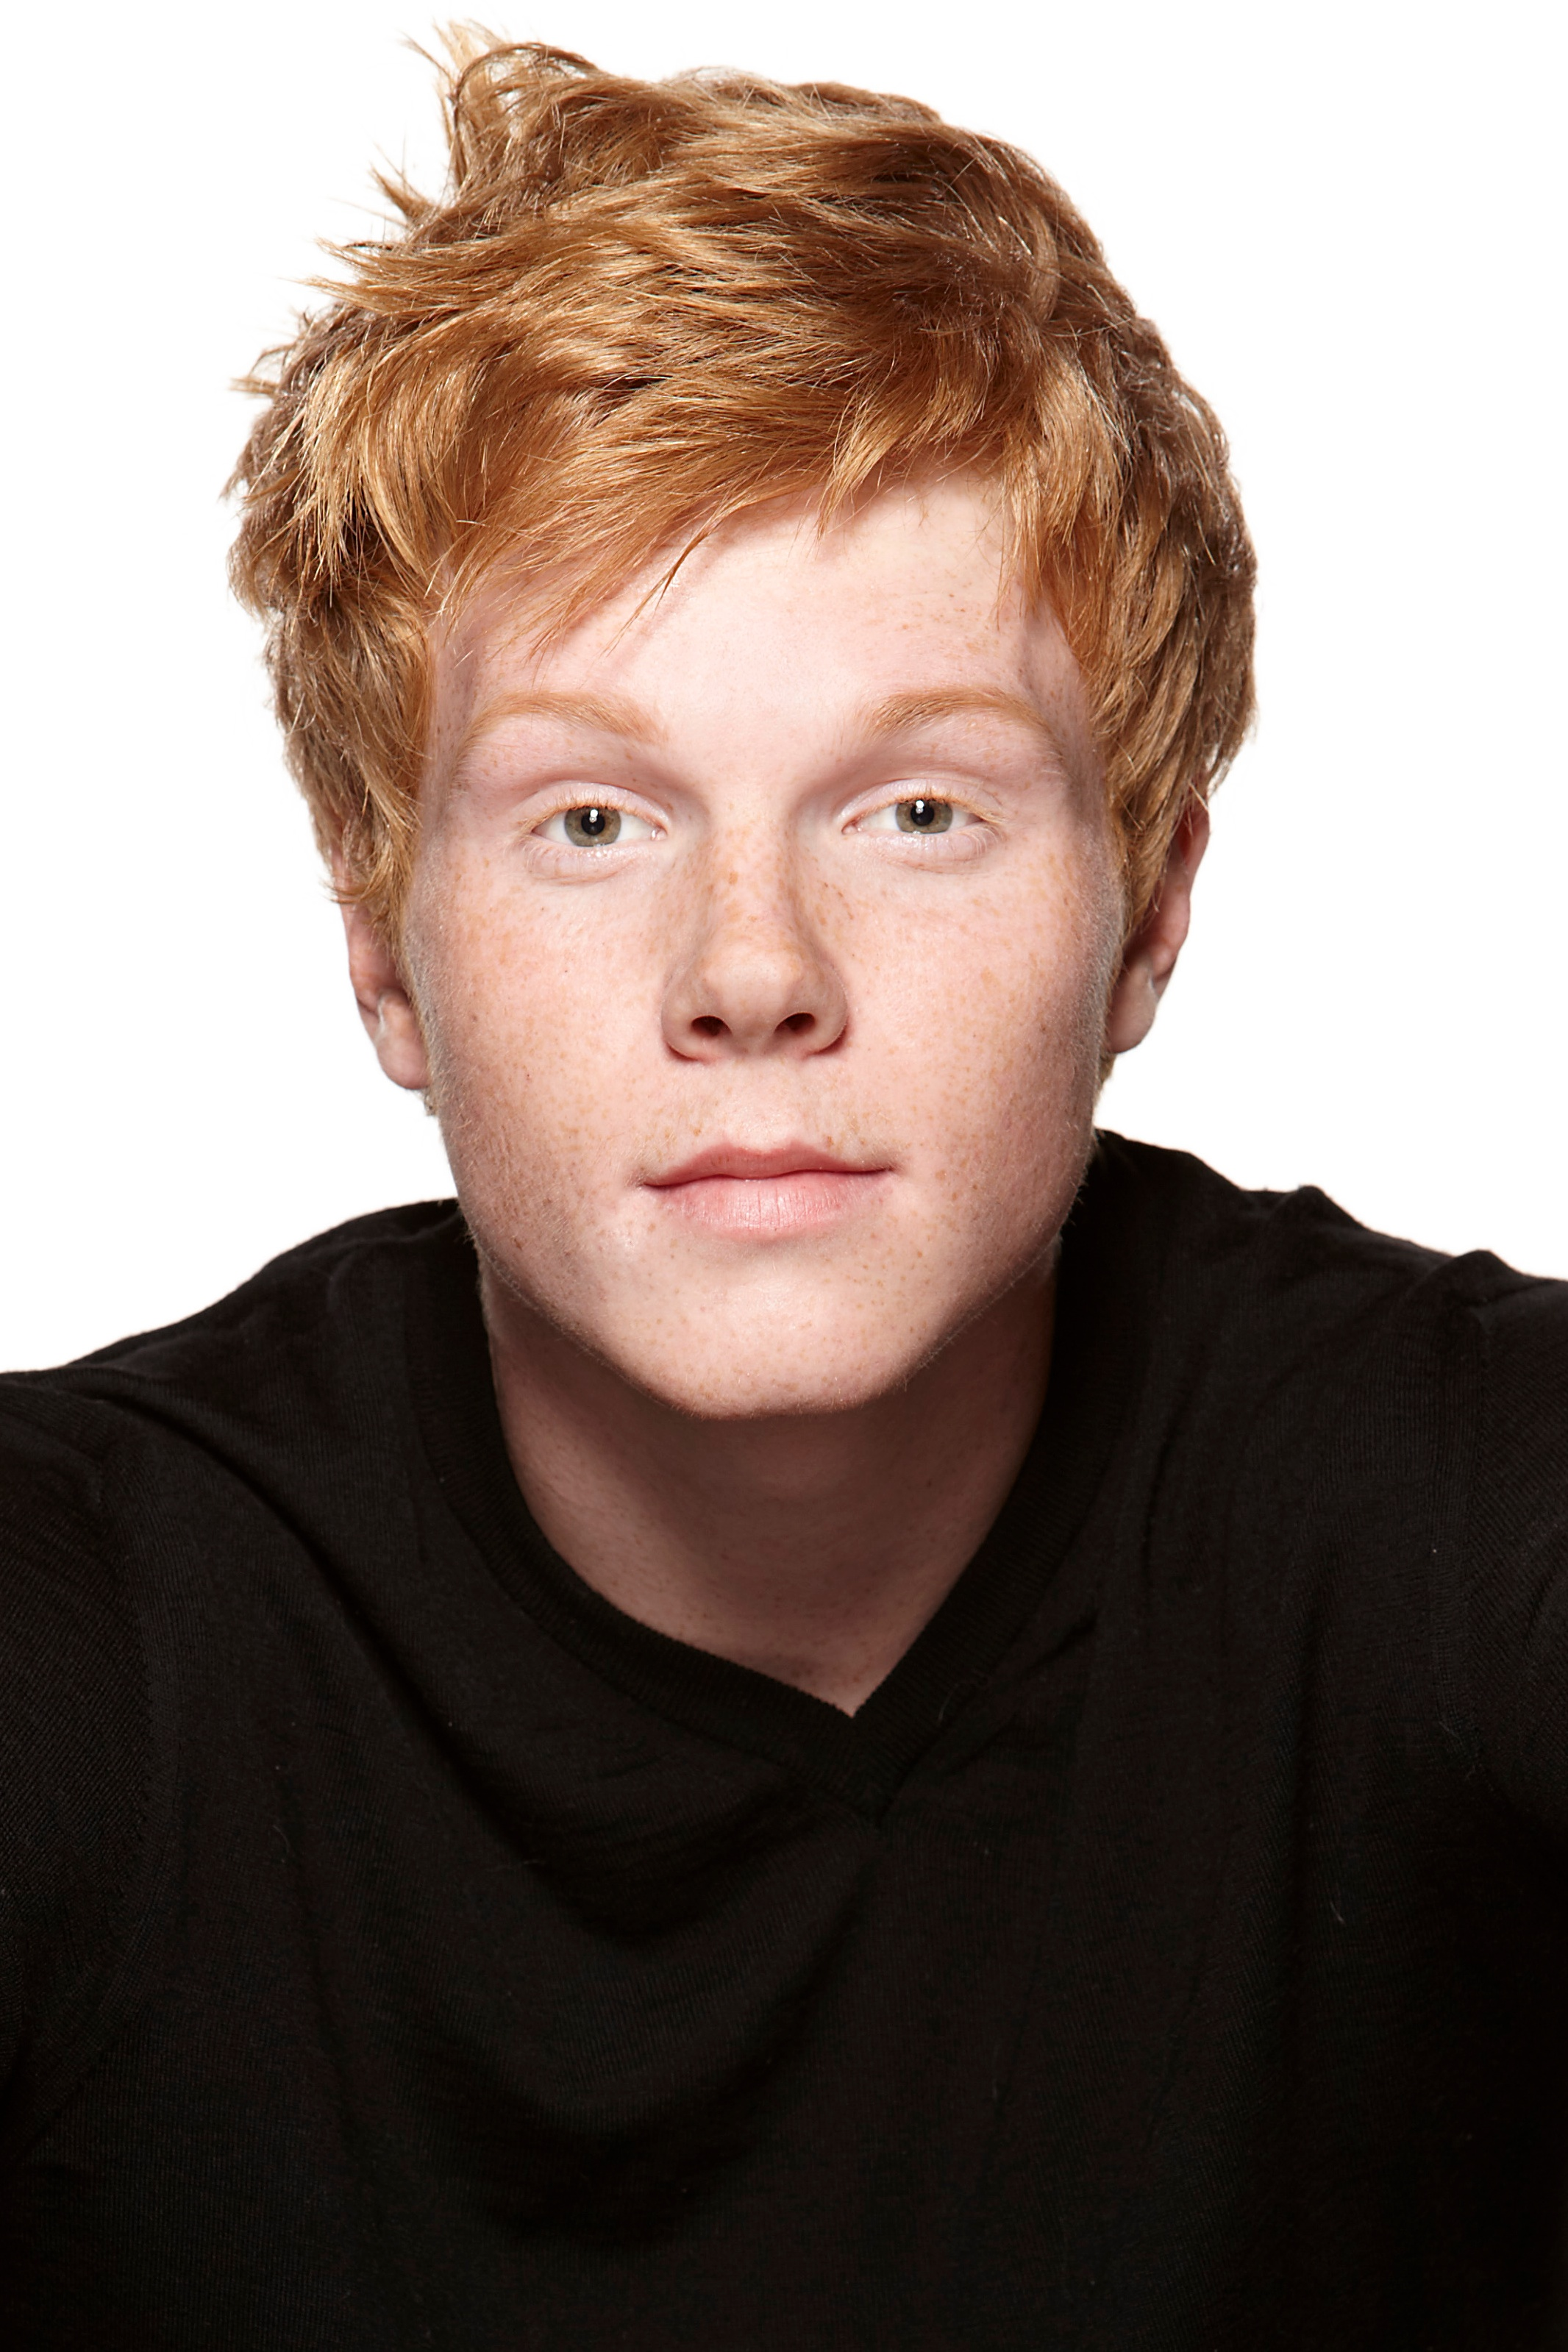 adam hicks facebookadam hicks instagram, adam hicks in the summertime, adam hicks dance for life lyrics, adam hicks height, adam hicks facebook, adam hicks one life, adam hicks twitter, adam hicks filmography, adam hicks whodunit, adam hicks, adam hicks 2015, adam hicks 2014, adam hicks songs, adam hicks rap, adam hicks dating, adam hicks dance for life, adam hicks we burnin up, adam hicks burnin up, adam hicks-non_stop_ summer, adam hicks rapping